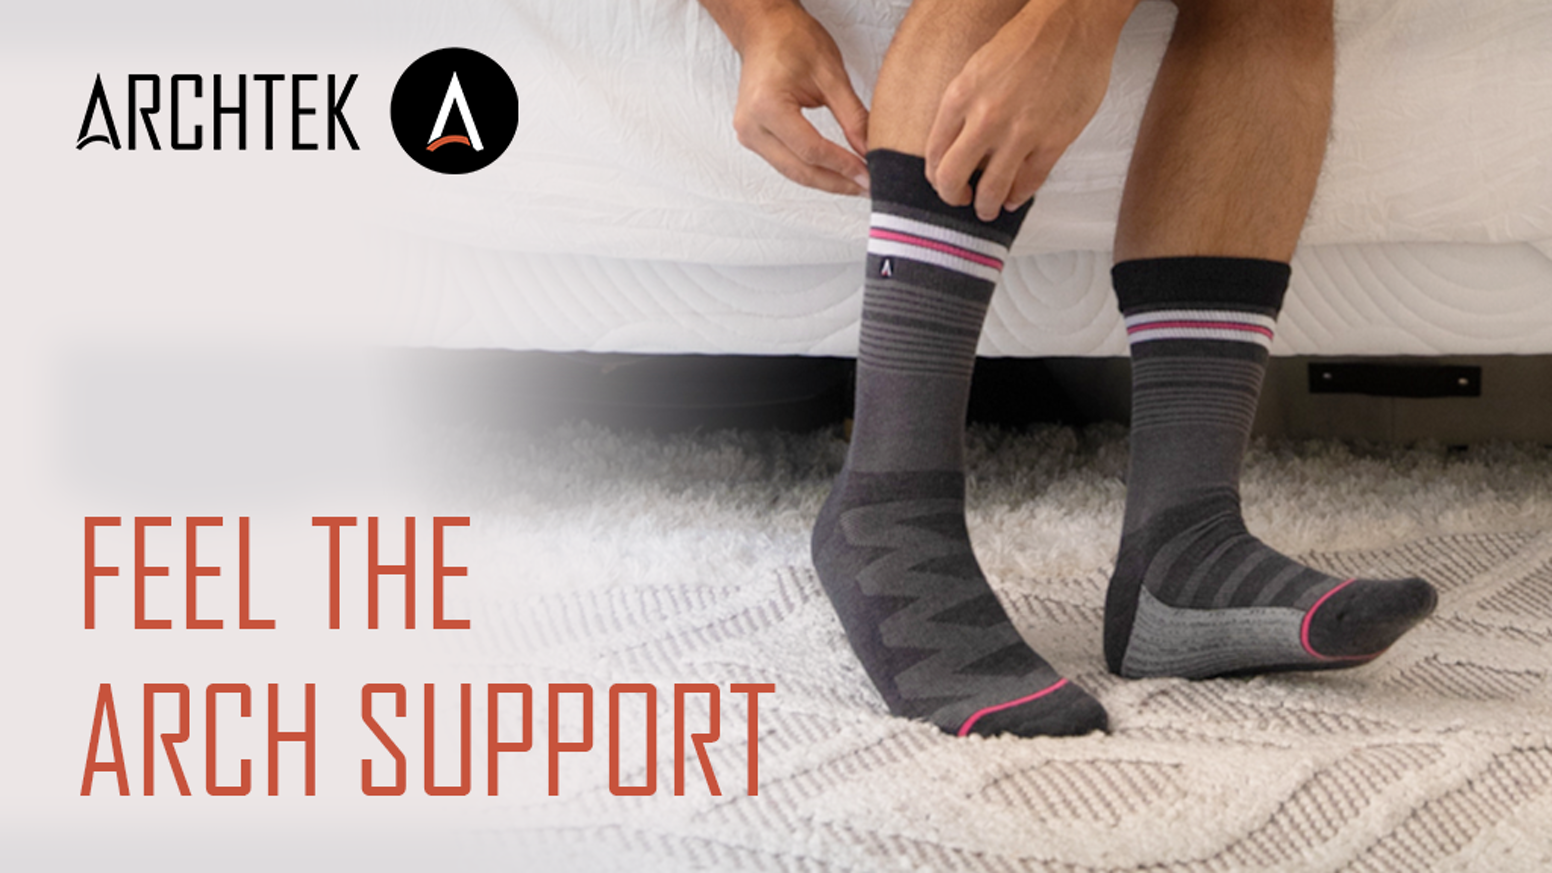 Doctor-approved Socks with Patented Arch Strengthening and Ankle Support - 14 Styles from Dressy to Athletic!